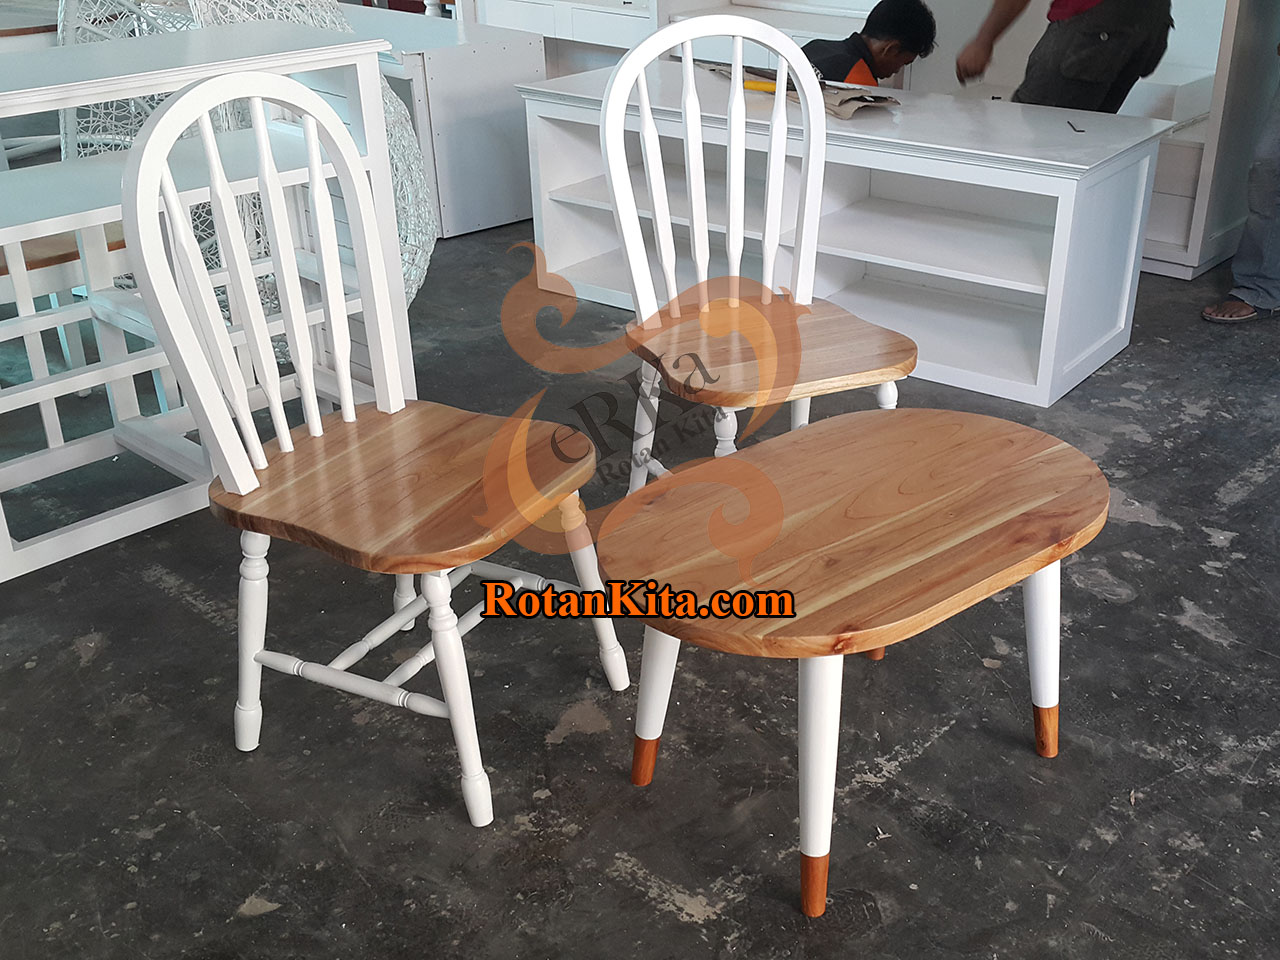 RMKM45 a Coffee Table | Code: RMKM45